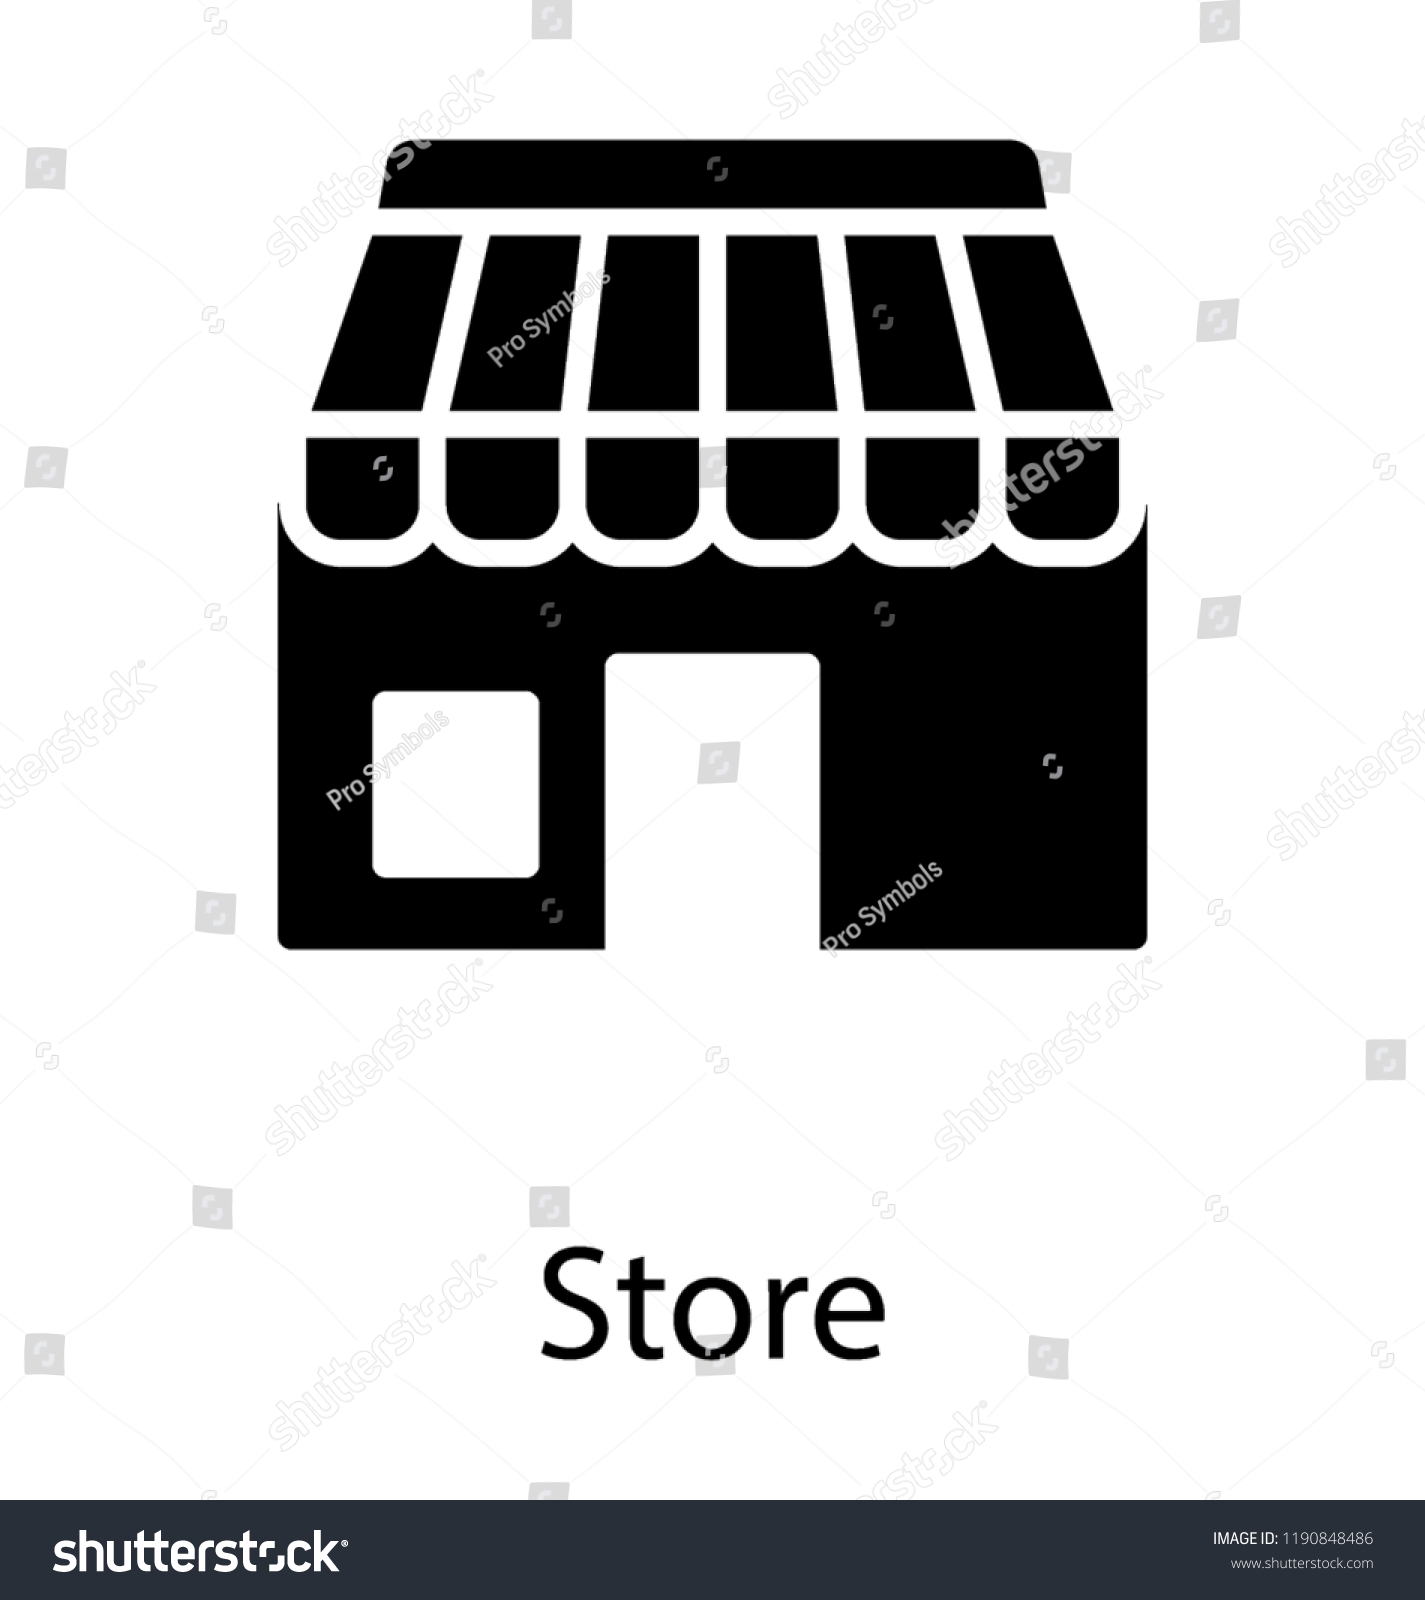 Building Having Door Windows Store Icon Stock Vector